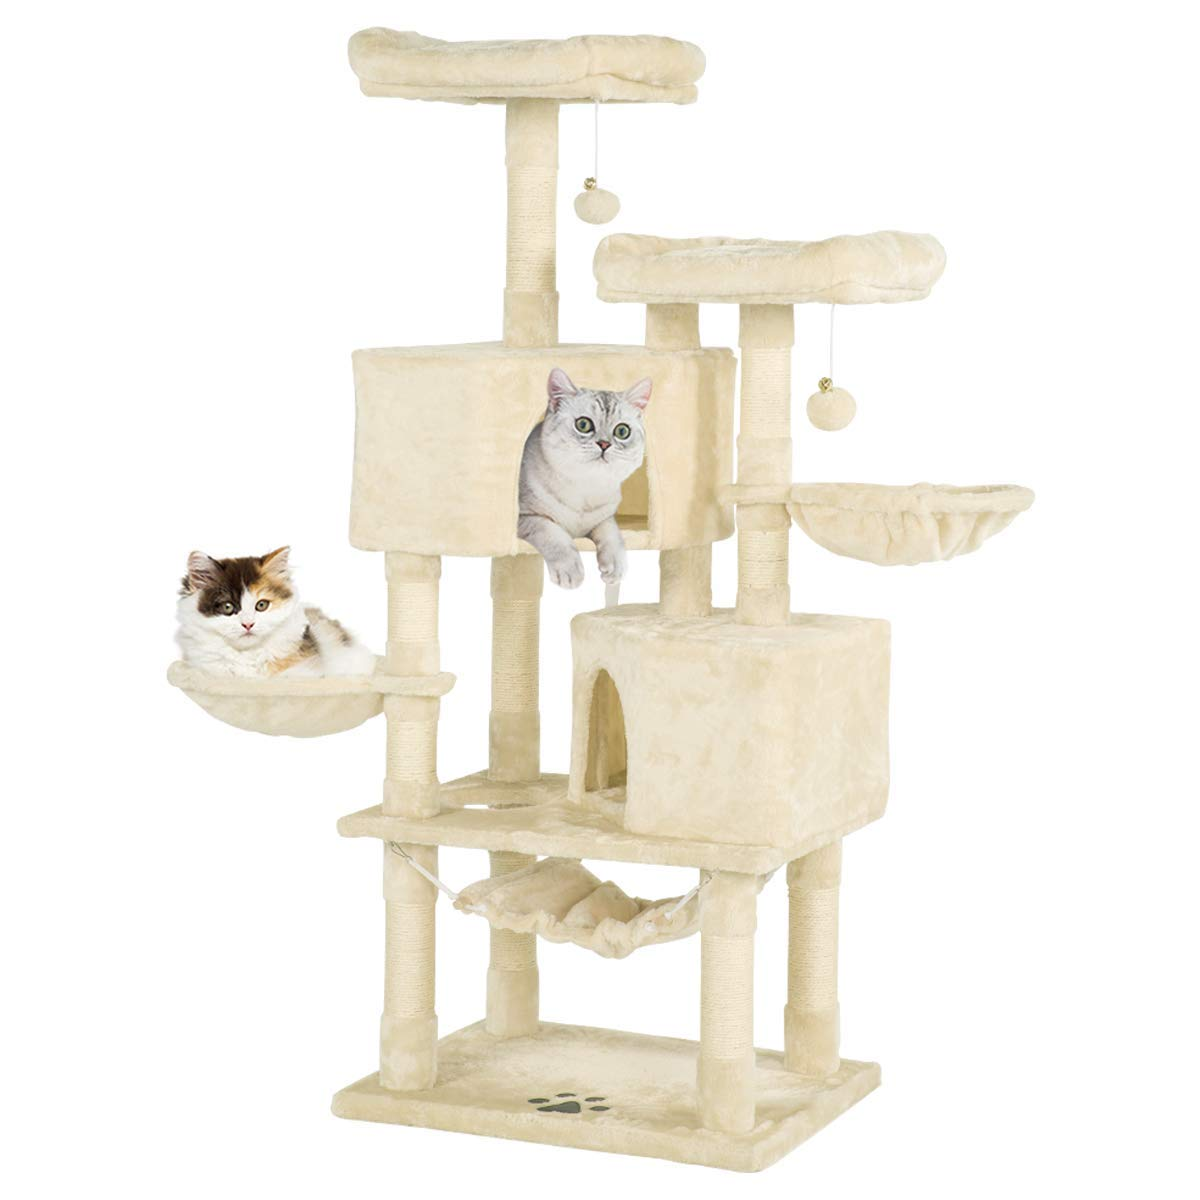 Erommy Multi Level Cat Tree Tower Condo With Cat Scratching Post Cozy Hammock Basket Hideaway House And Platforms Kitty Activity Center Kitten Play House Large Cat Tower Furniture Walmart Com Walmart Com